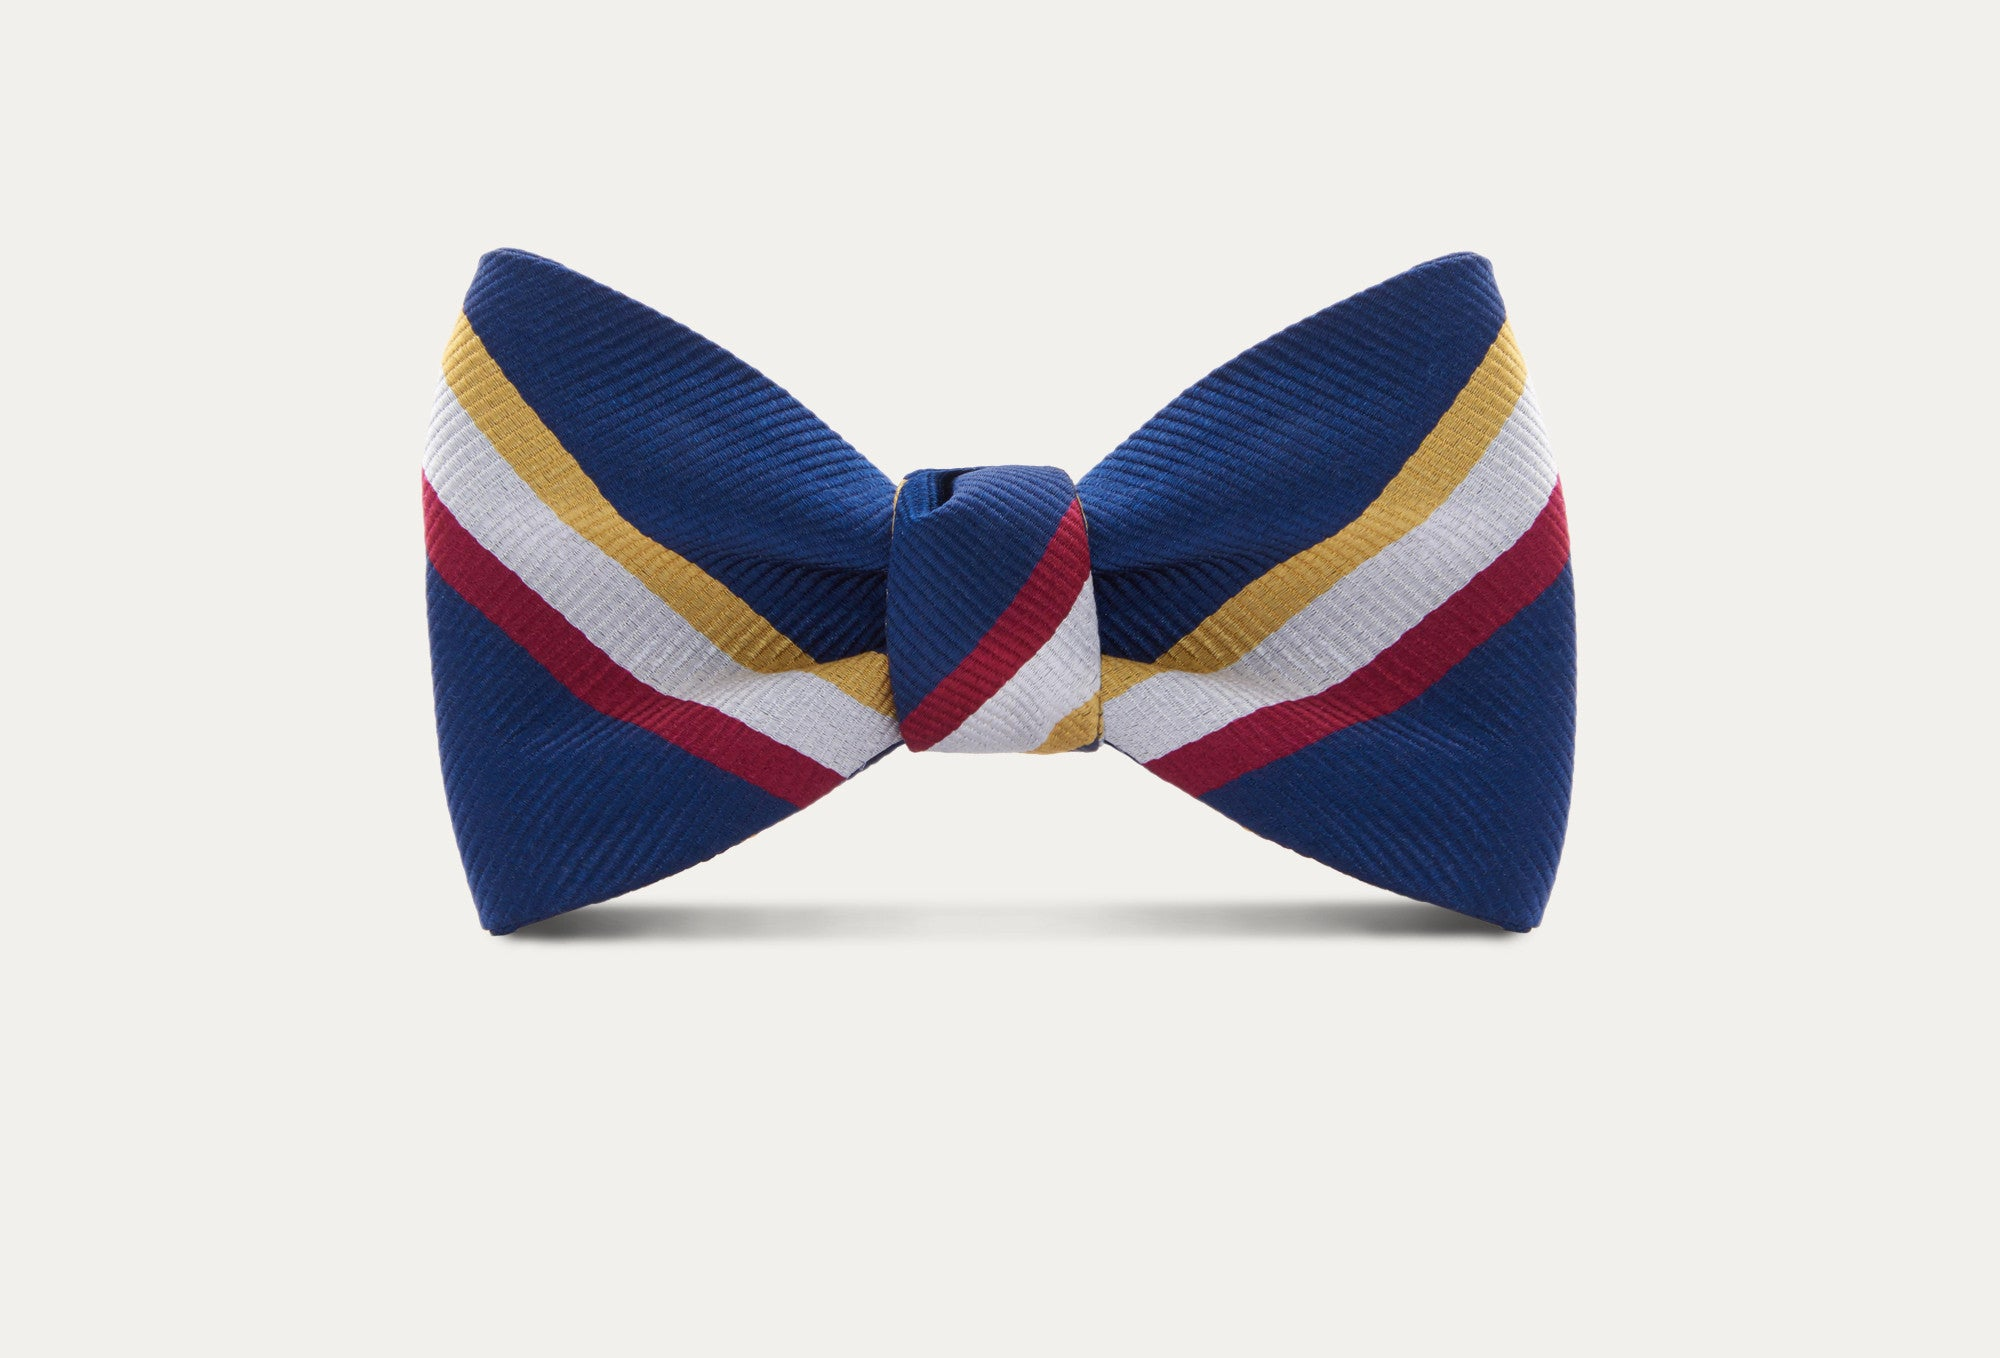 Edison Butterfly Bow Tie